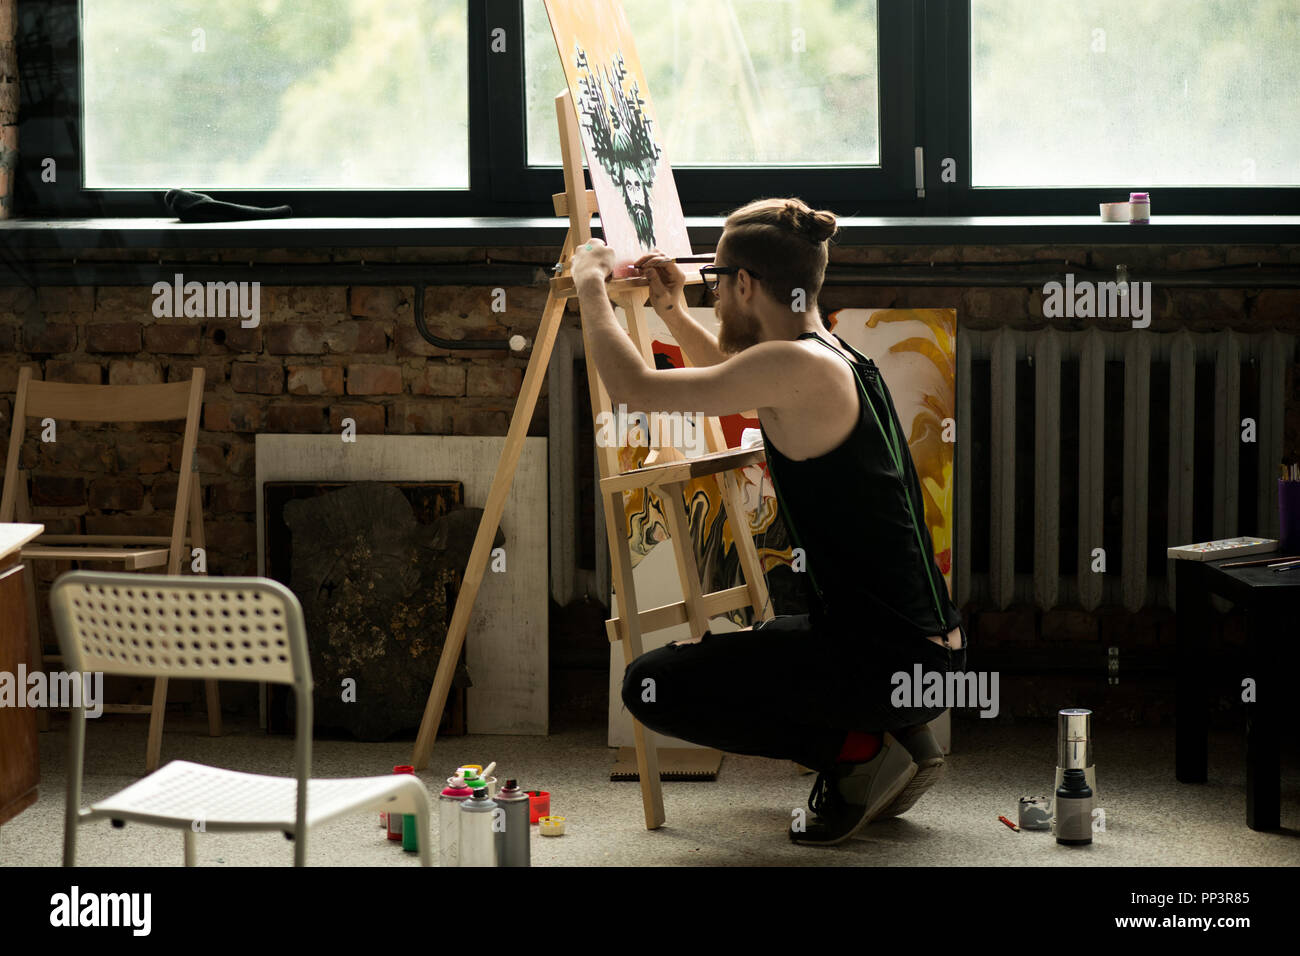 Modern Artist Painting on Easel - Stock Image